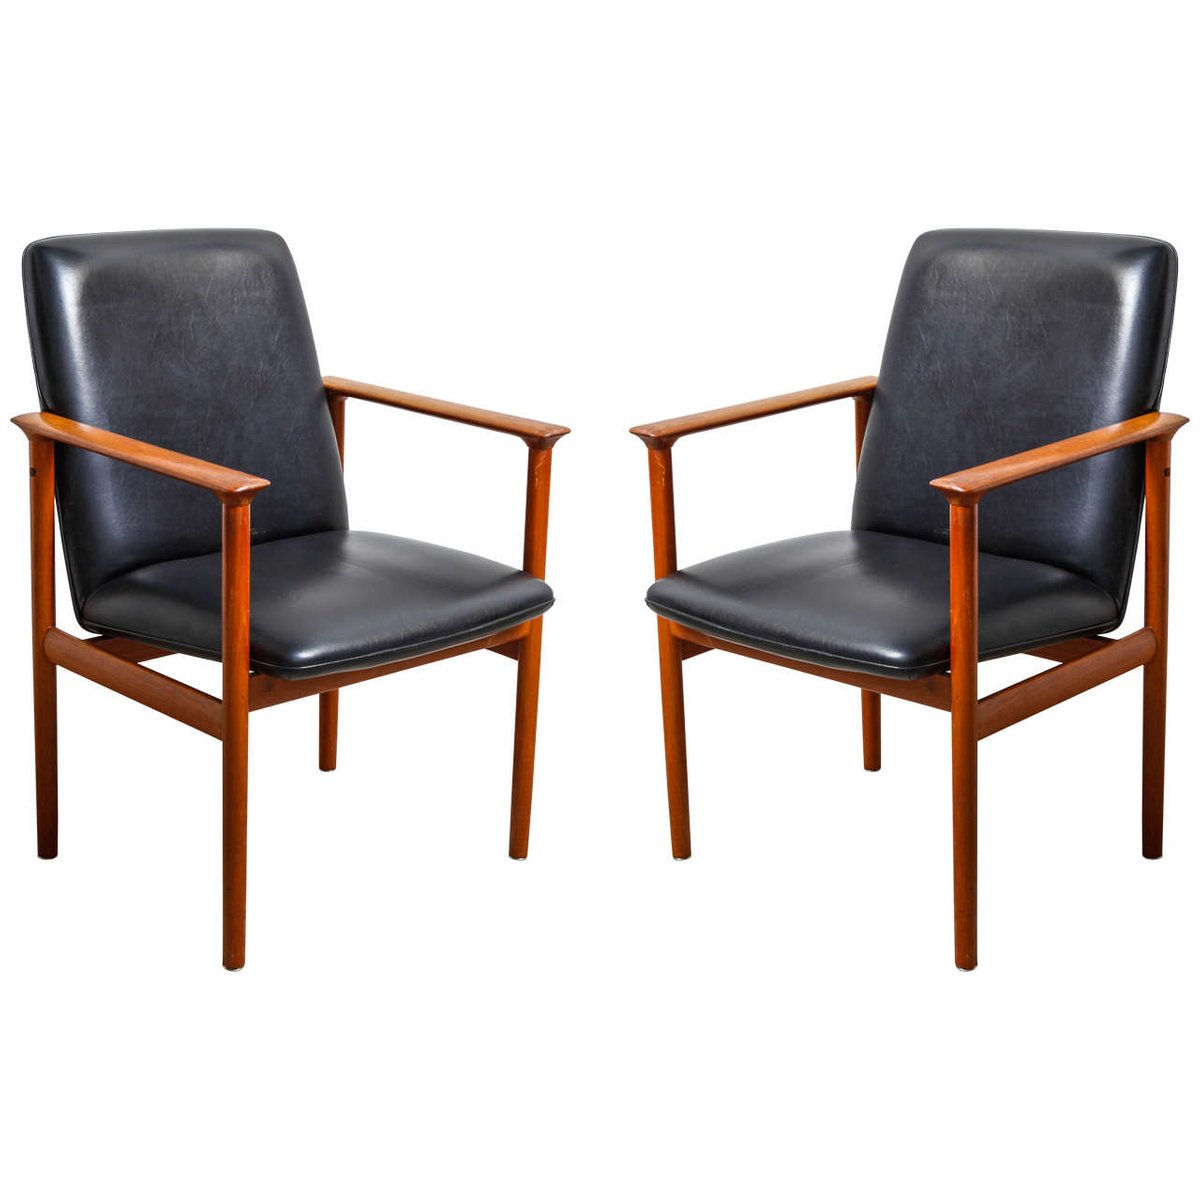 diplomat armchairs by arne vodder for sibast 1960s set of 2 for sale at pamono. Black Bedroom Furniture Sets. Home Design Ideas